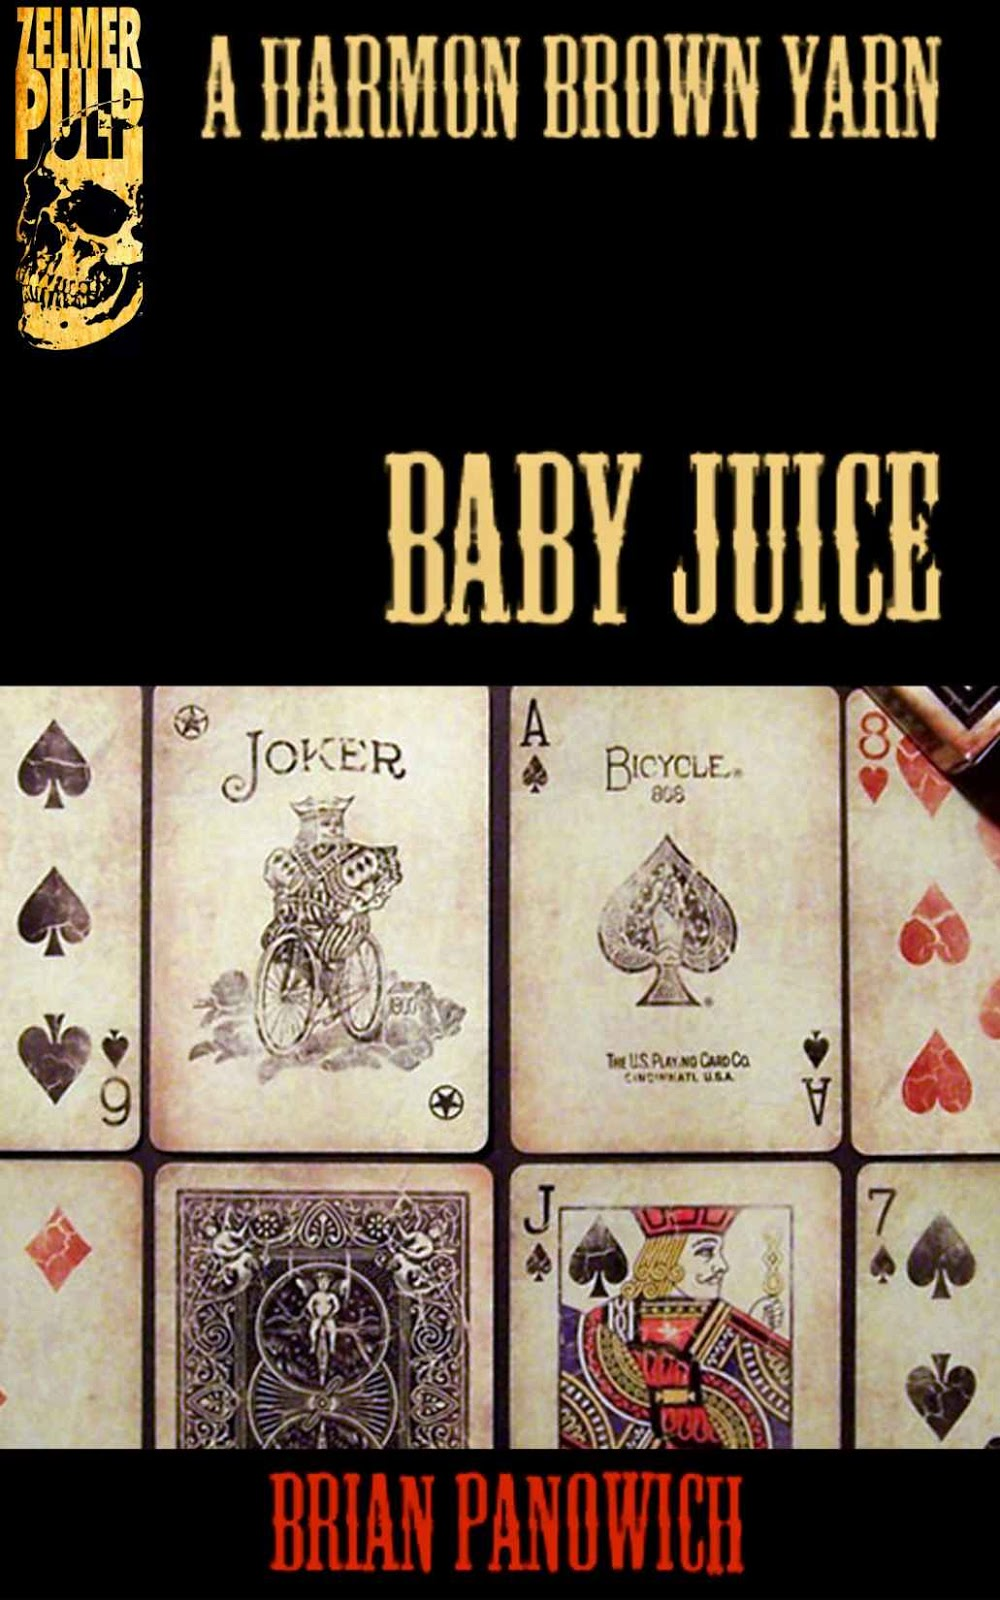 http://www.amazon.com/Baby-Juice-Harmon-Brown-ebook/dp/B00CUJX07Y/ref=sr_1_7?s=books&ie=UTF8&qid=1375019381&sr=1-7